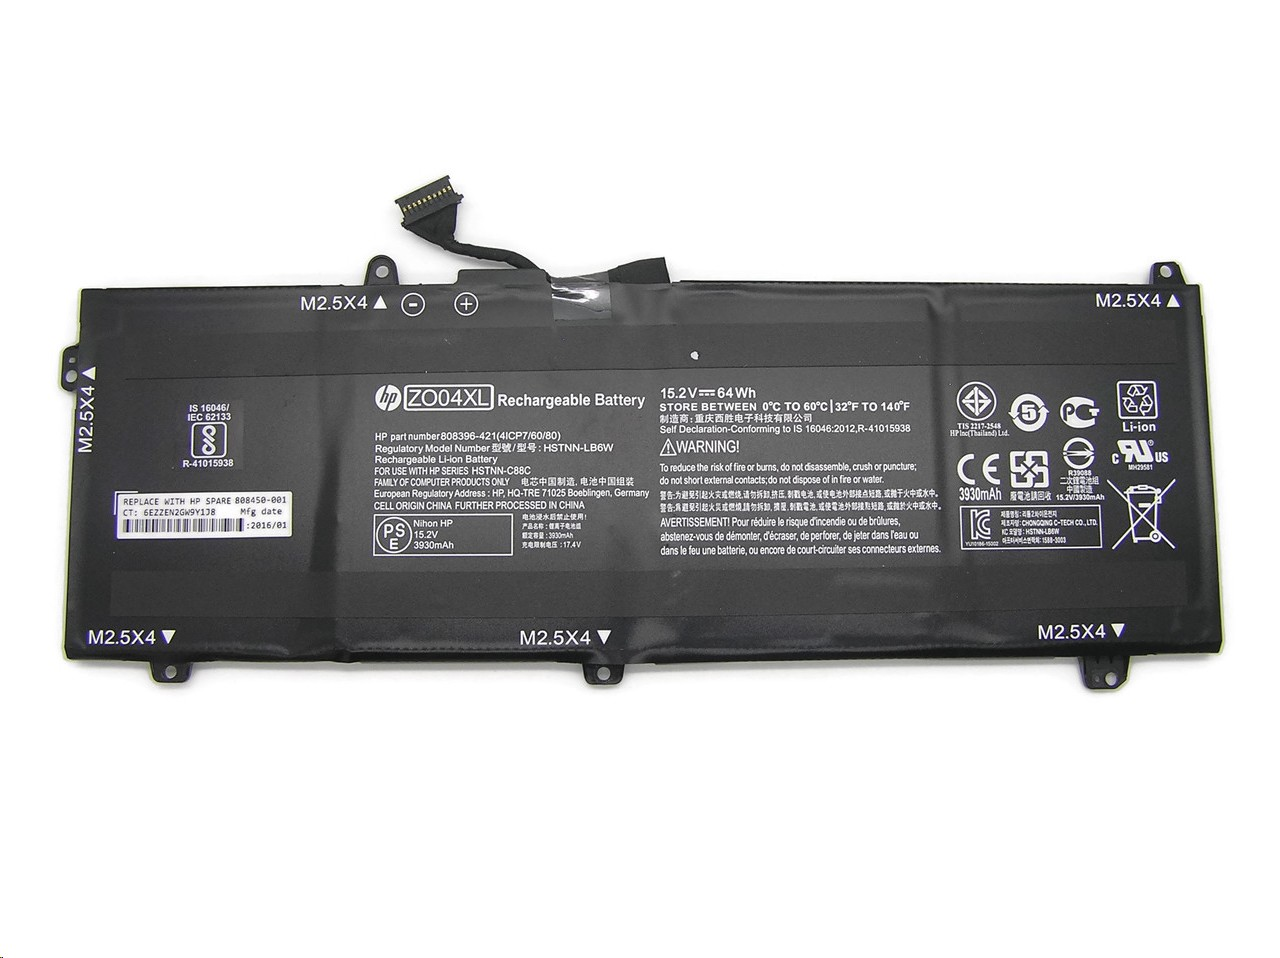 HP ZO04XL Genuine 15.2V 64Wh 4210mAh 4-Cell Zbook Studio G3 G4 Battery 808450-001